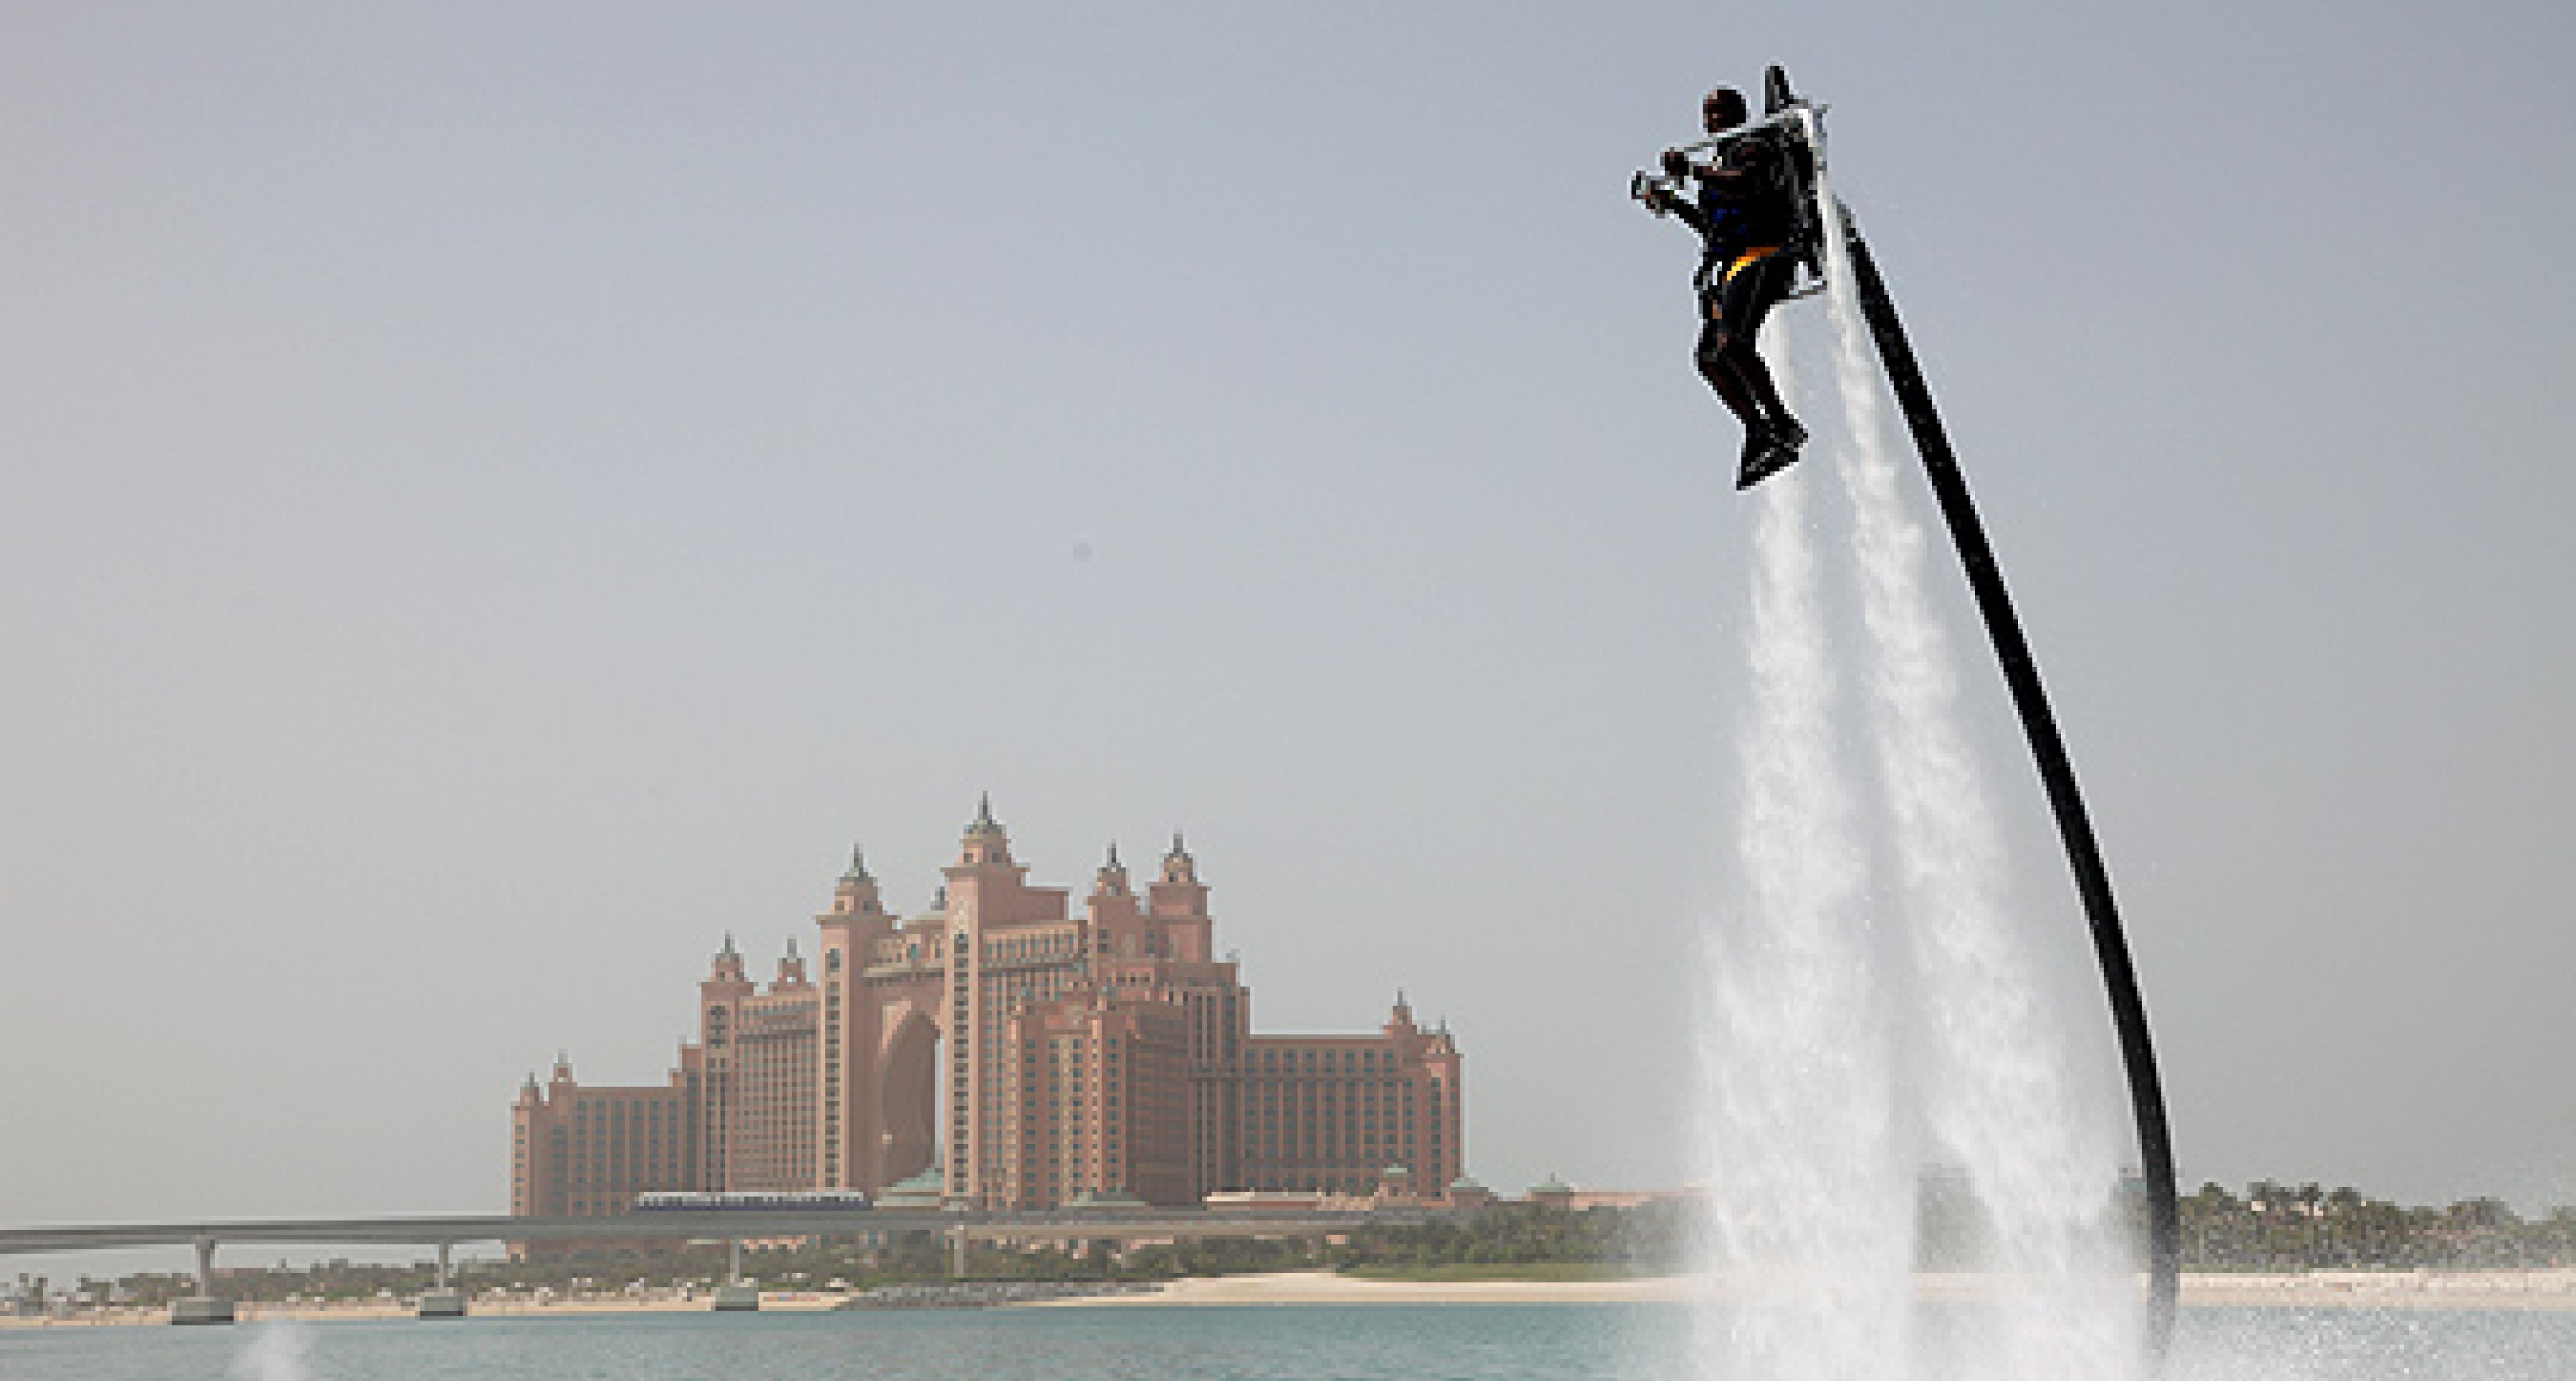 Rocket man: JetLev Flyer takes to the air